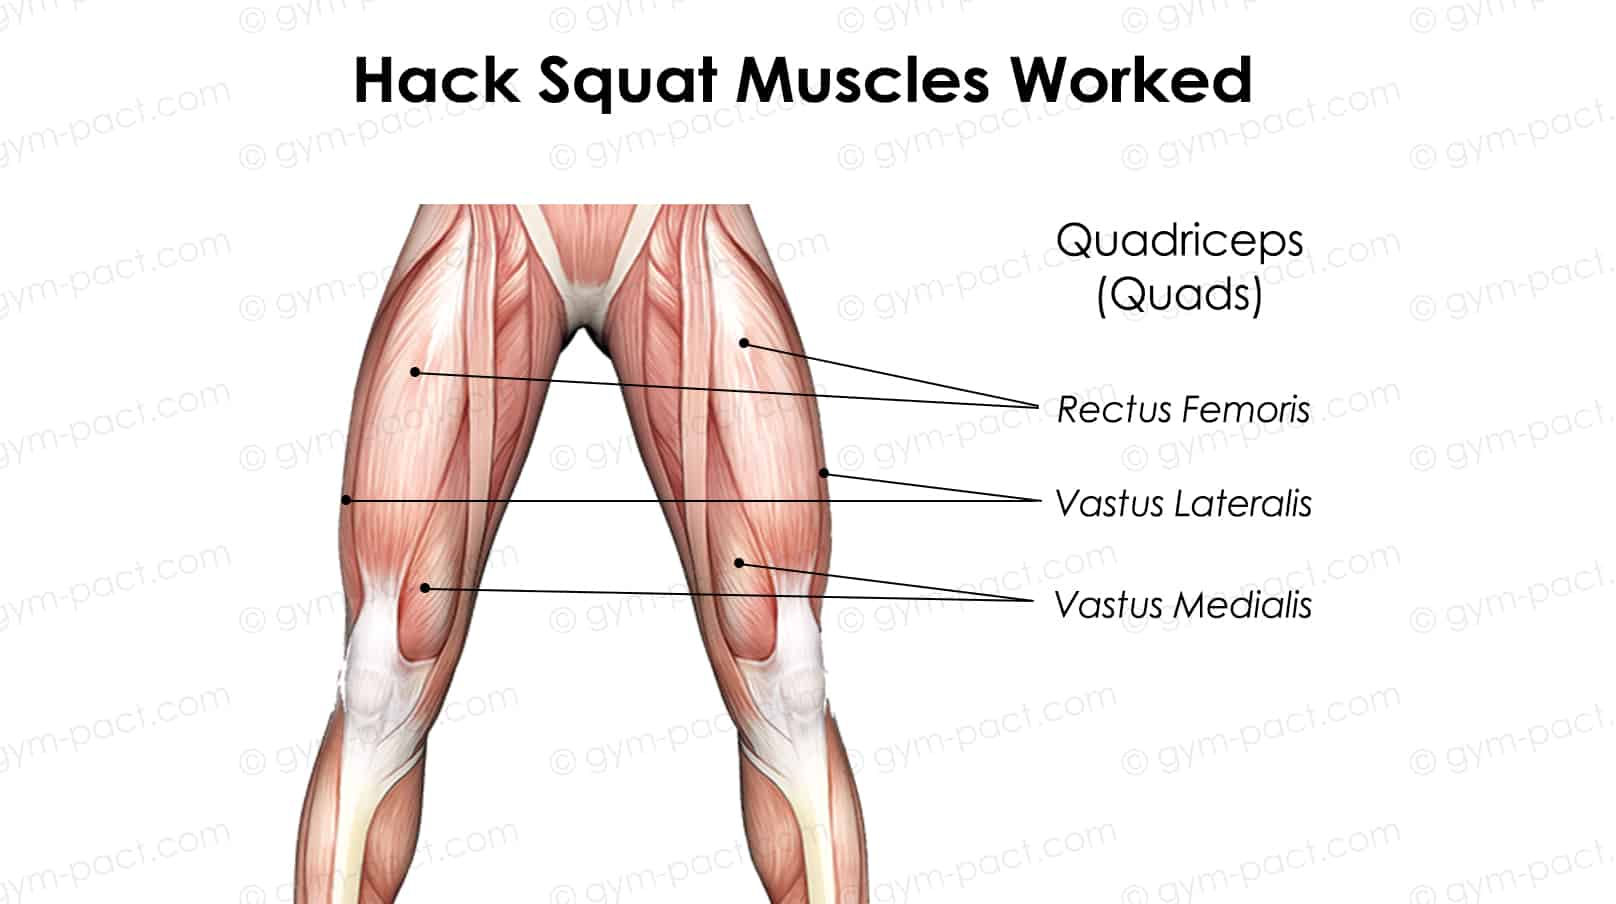 Hack Squat Muscles Worked